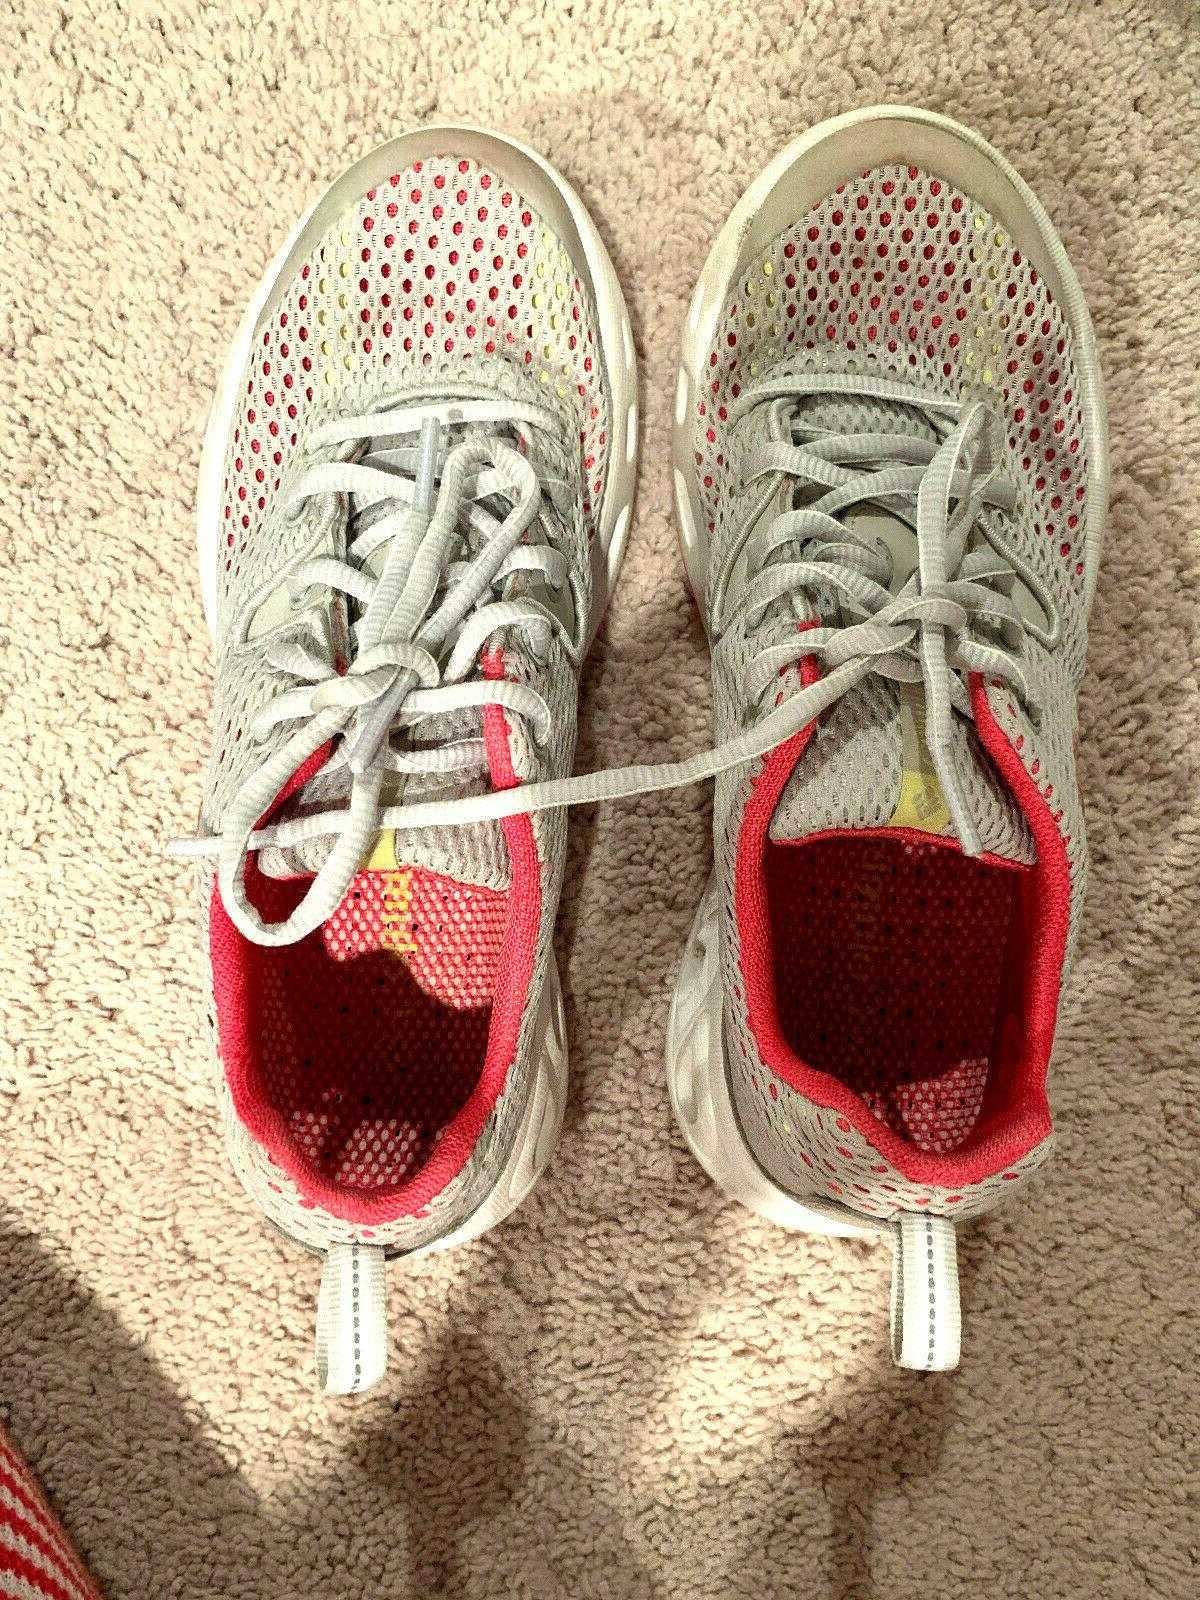 Columbia 2 Womens Athletic Water Shoes